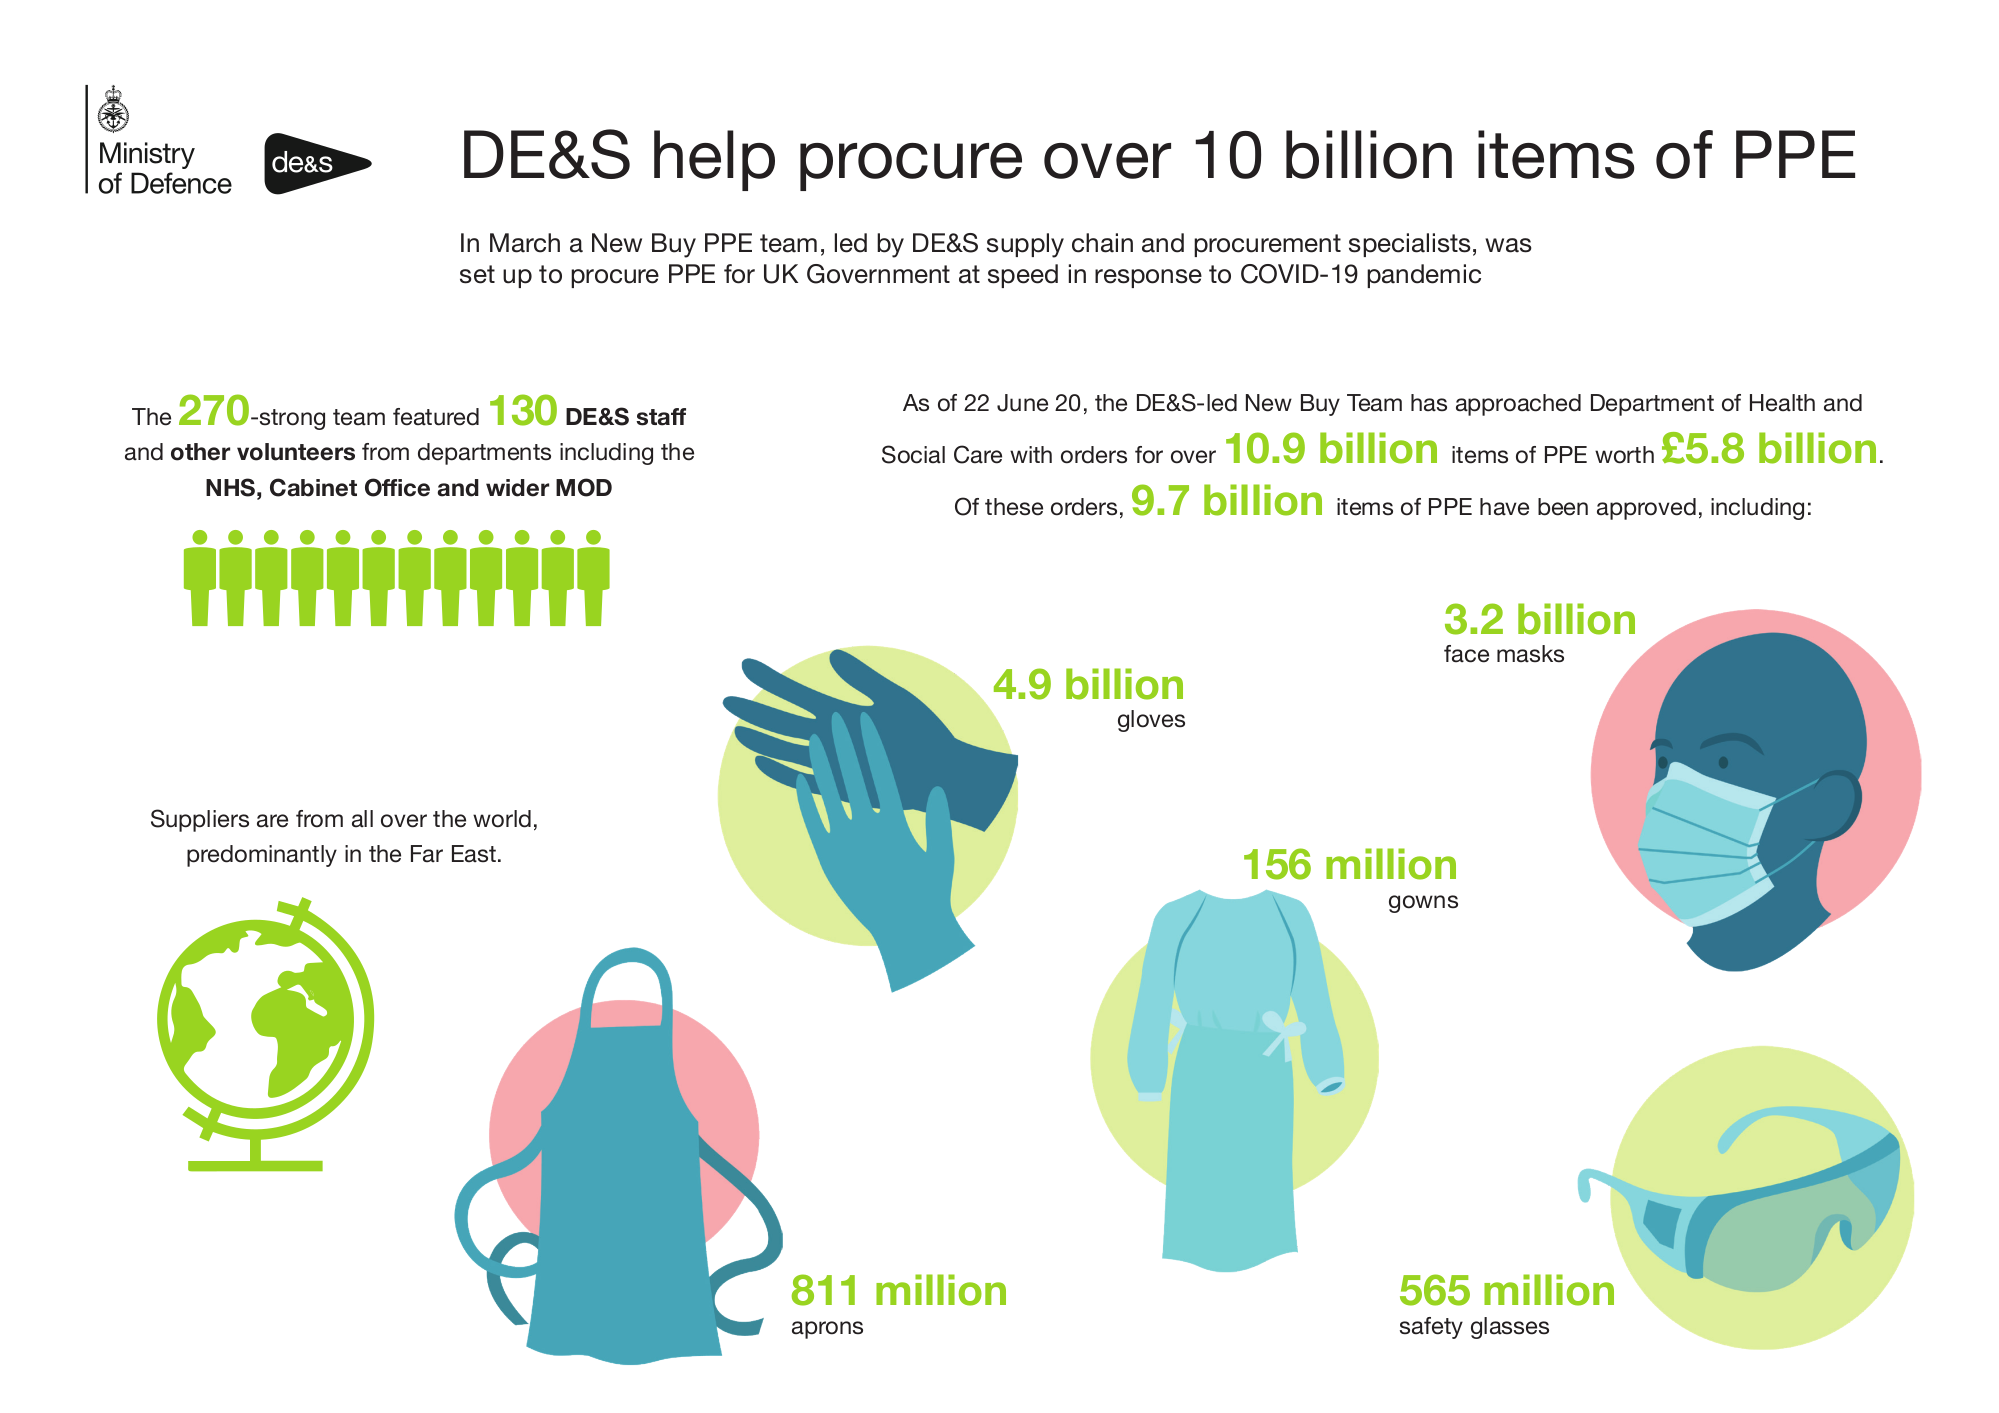 Infographic explaining that the MoD team procured PPE, sourced mostly from the 'Far East', with 270 staff members. PPE was: 4.9 billion individual gloves, 811 million aprons, 156 million gowns, 3.2 billion face masks, 565 million safety glasses. 10.9 billion items of PPE worth £5.8bn.